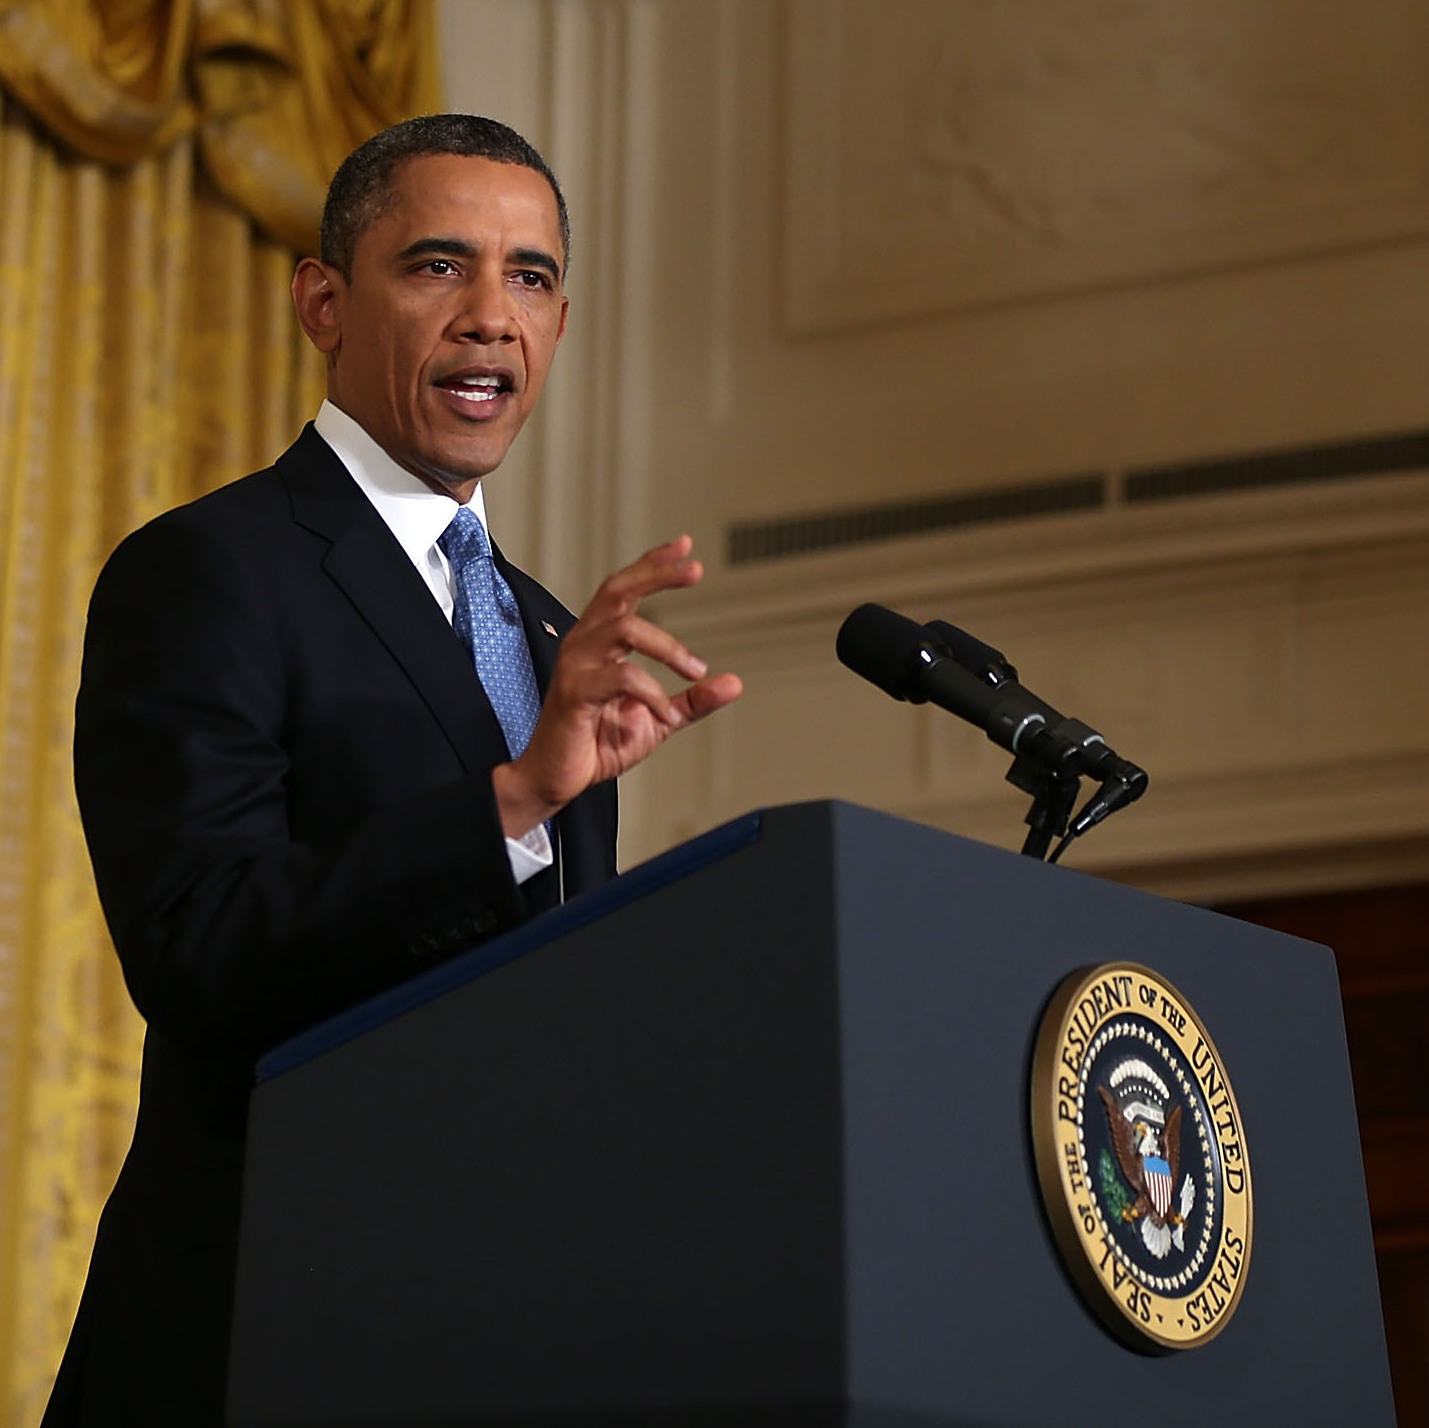 President Obama during his news conference at the White House on Monday.